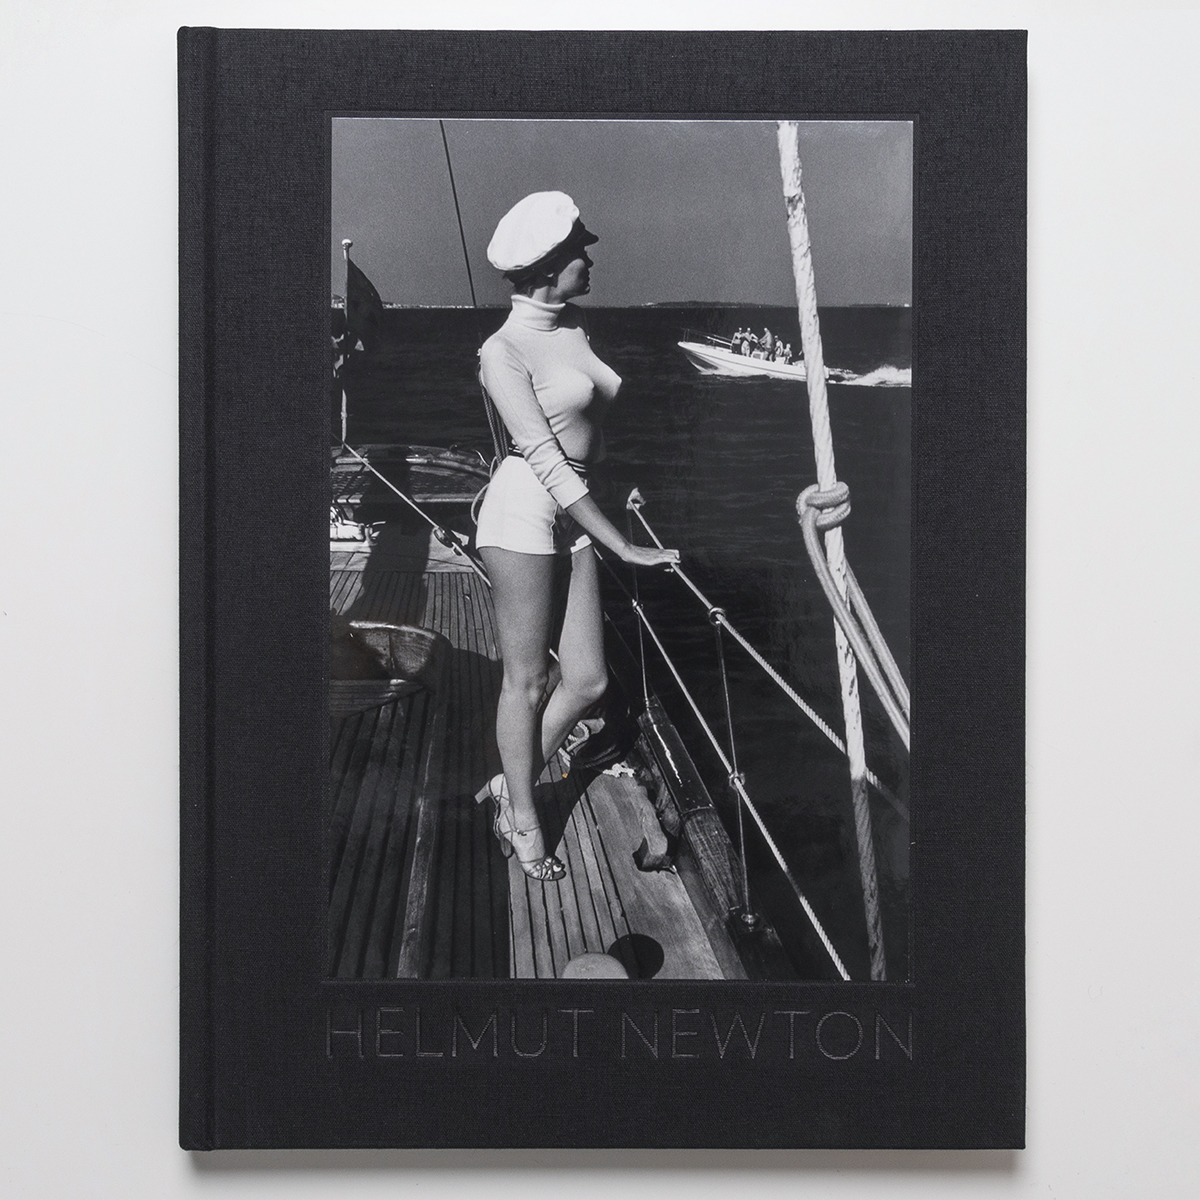 Helmut Newton: High Gloss book cover